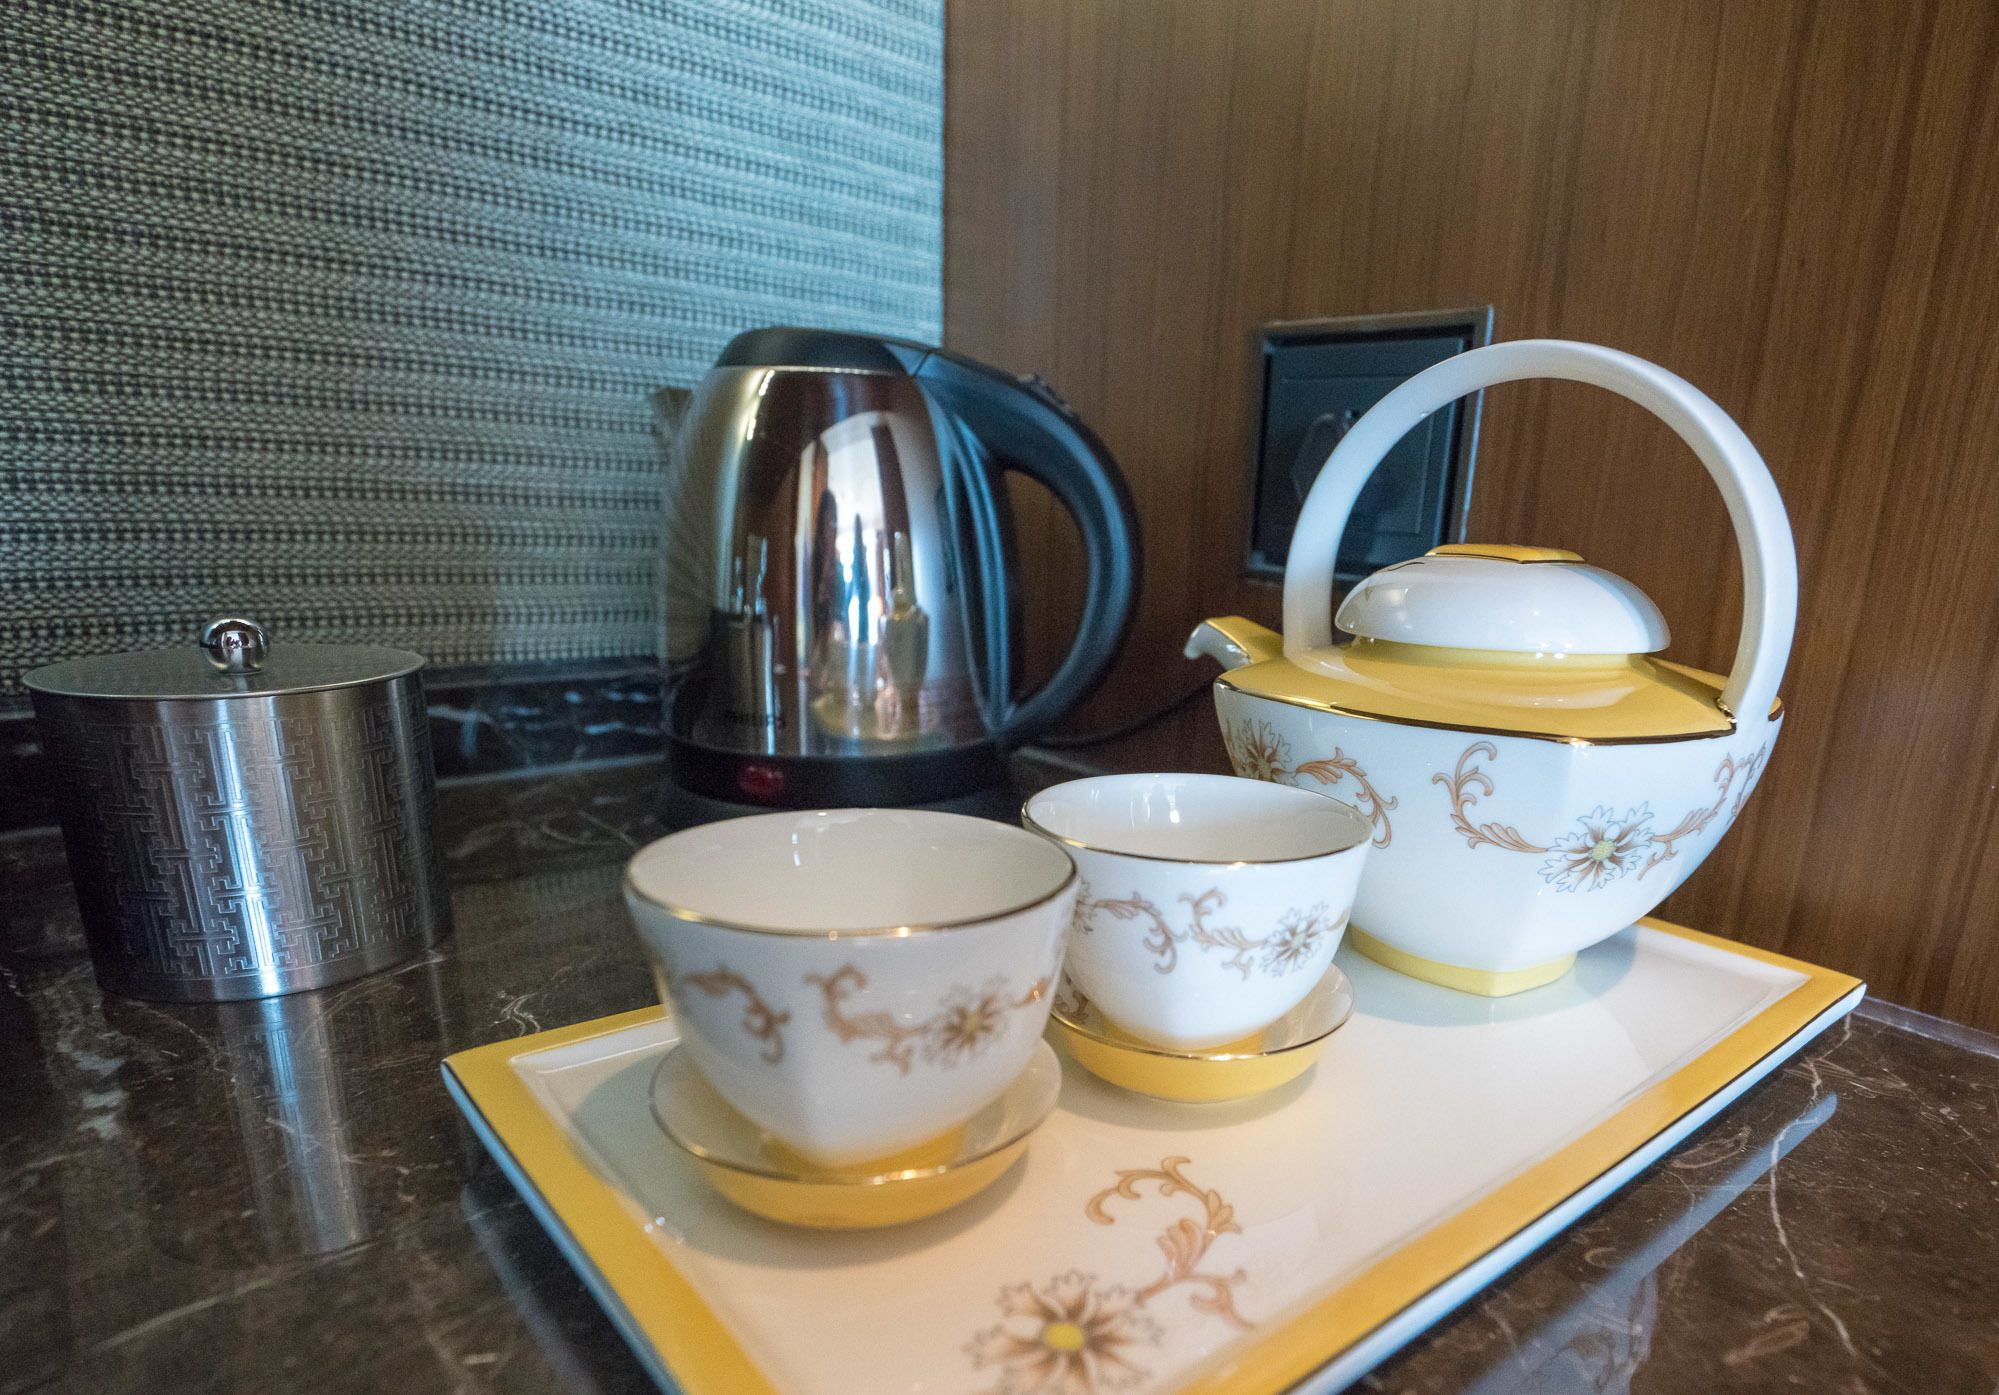 Fell in love with this tea set at Mandarin Oriental Pudong, Shanghai.